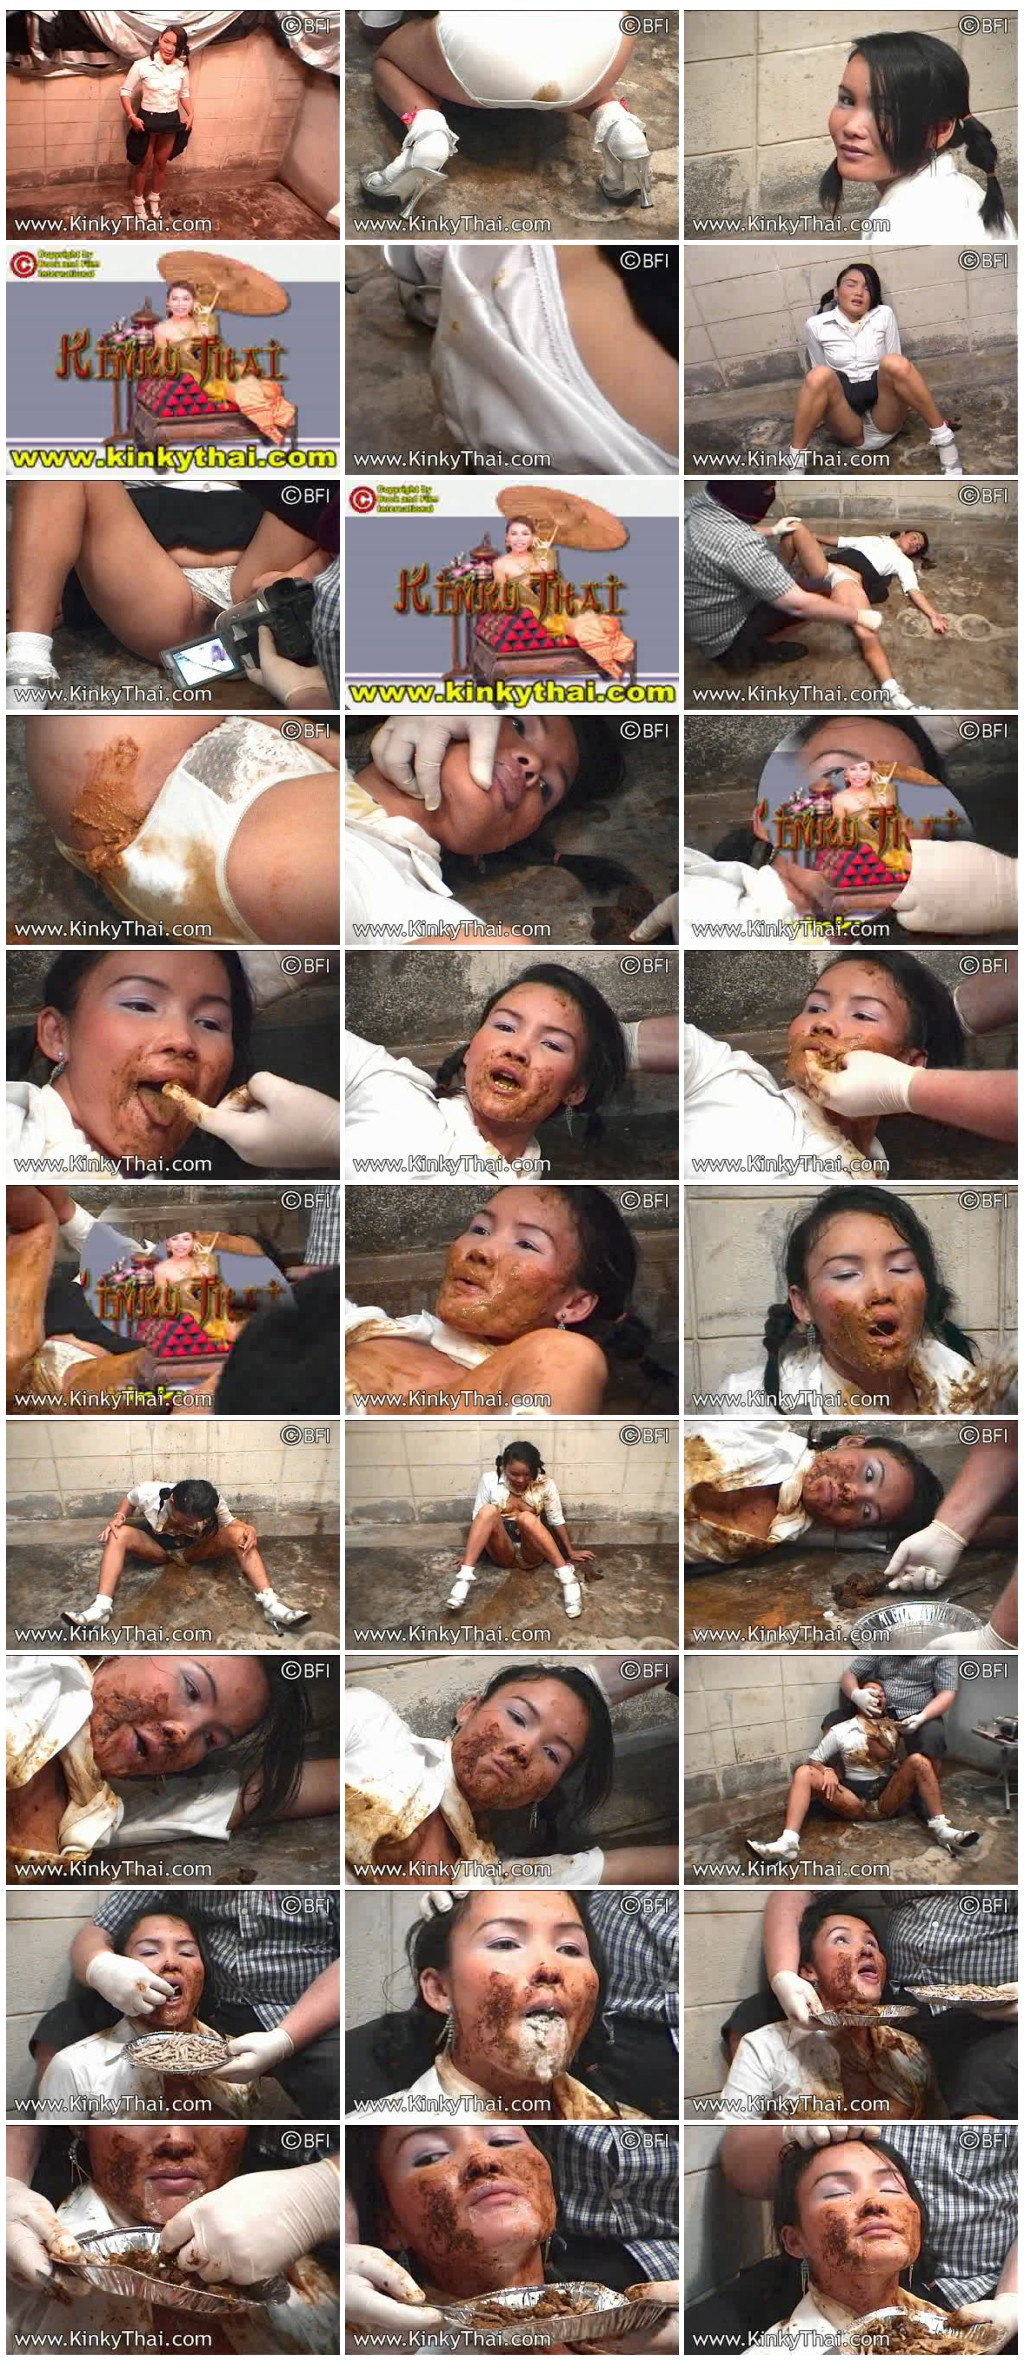 [Sweetmook.com] Asian girls are eating dog shit Kinky Thai - A Rainy Dogshit Day [Scat, Piss, Zoo]